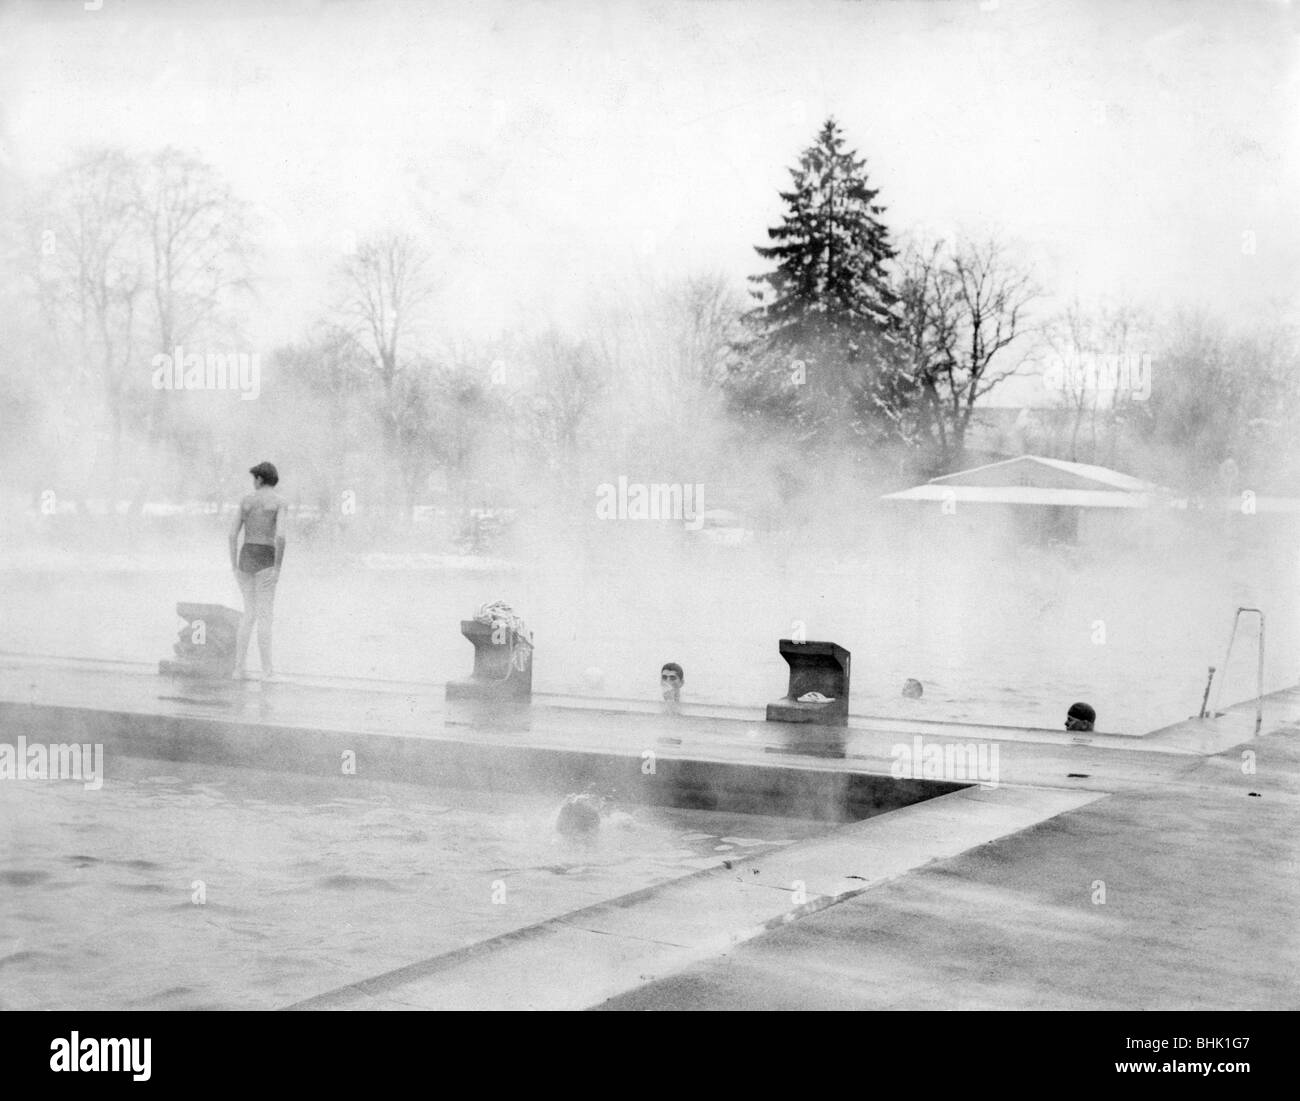 Bathing lido open air swimming pool in winter 1970s open air stock photo royalty free image for Opening swimming pool after winter